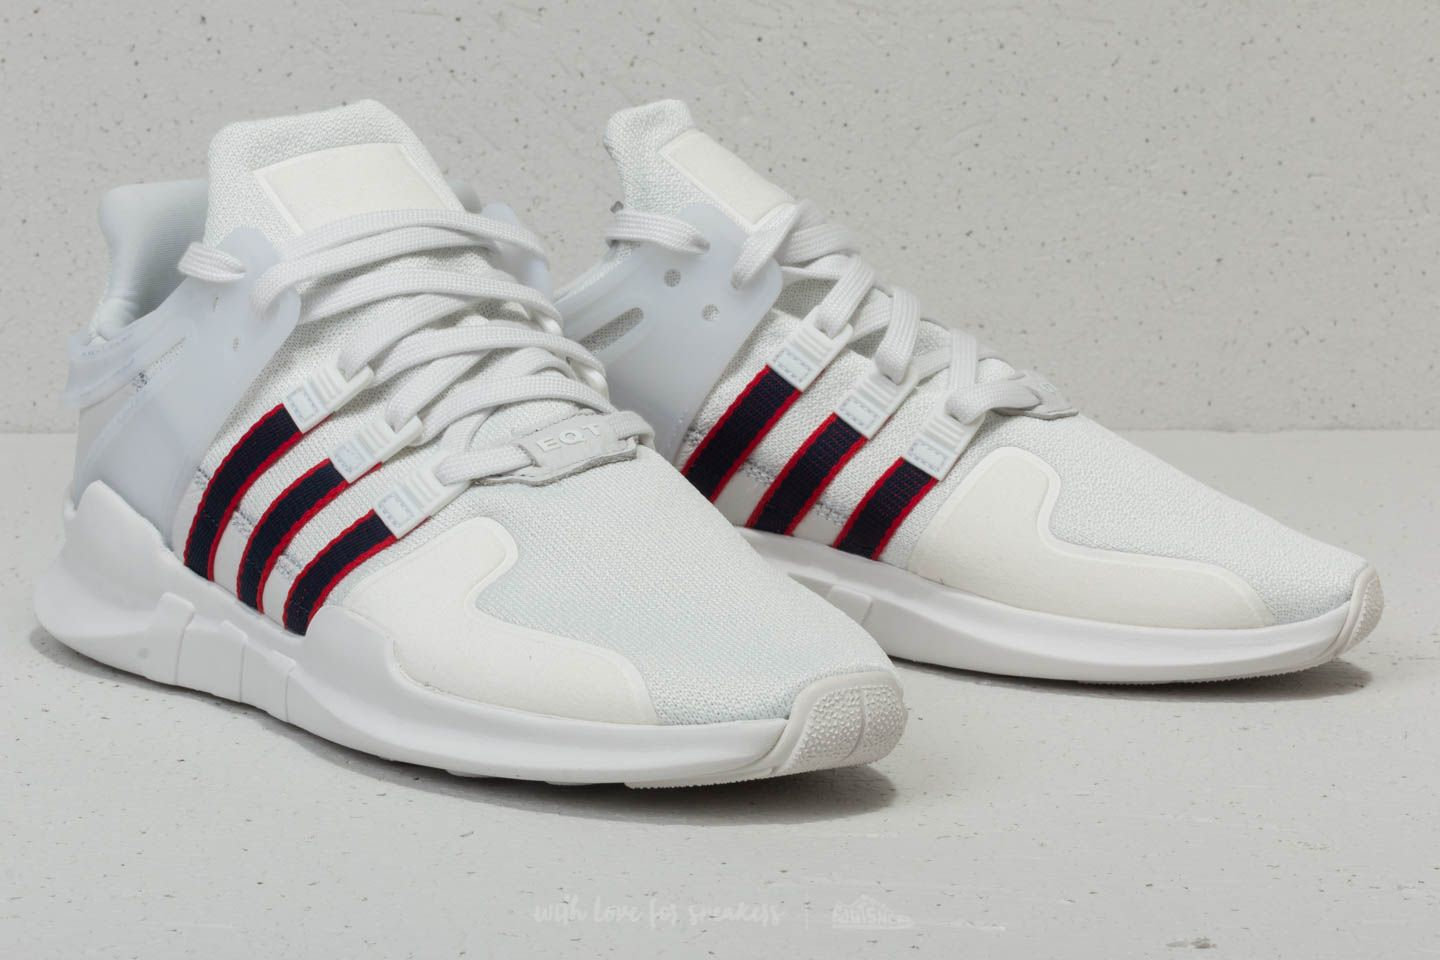 adidas EQT Support ADV Crystal White Collegiate Navy Scarlet | Footshop